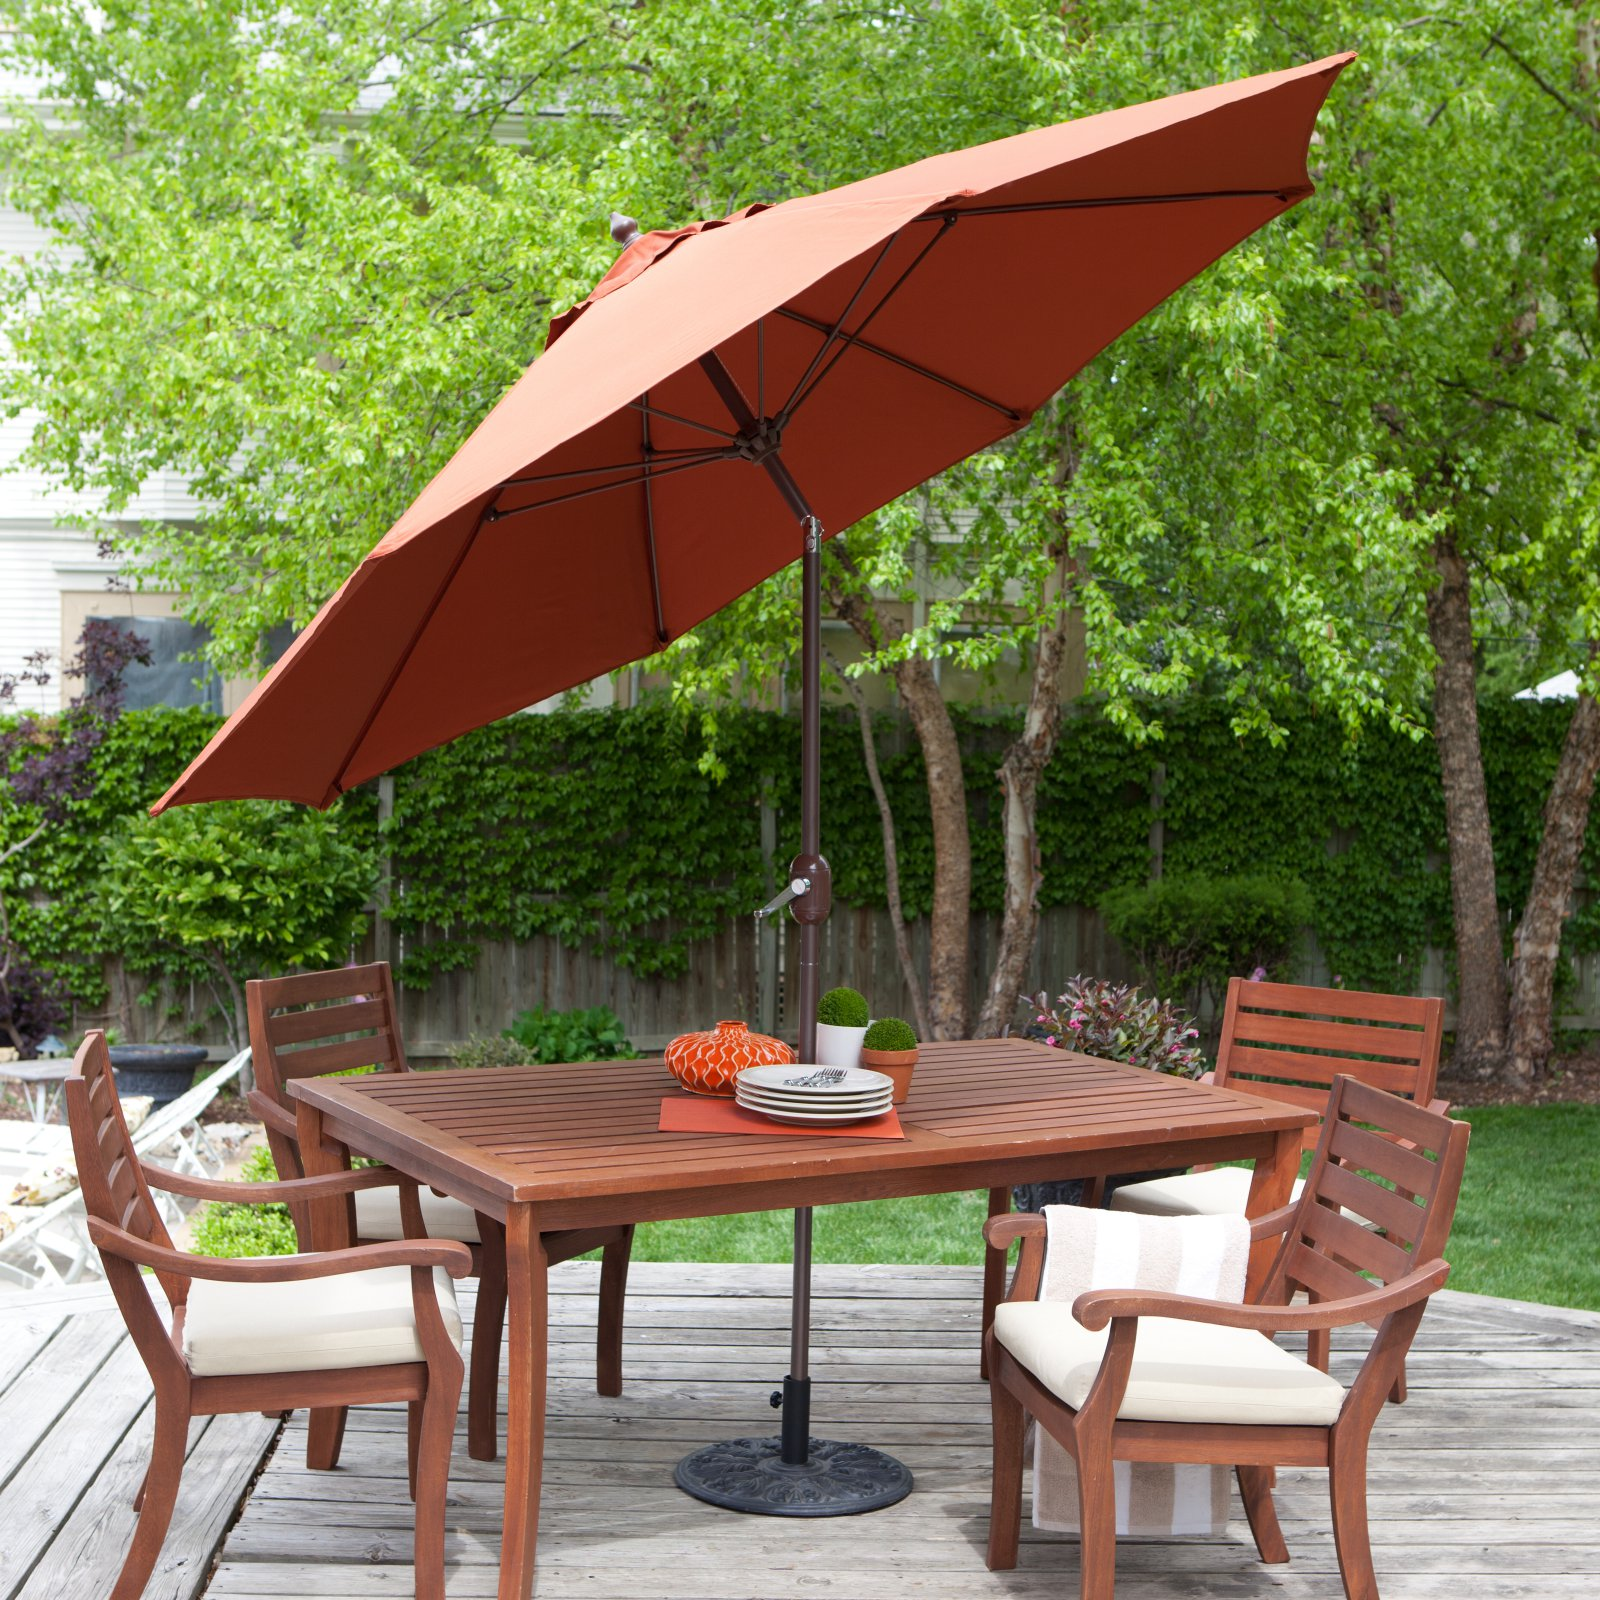 coral coast 9-ft. spun-poly push button tilt patio umbrella with 40 9 Ft Umbrella Base